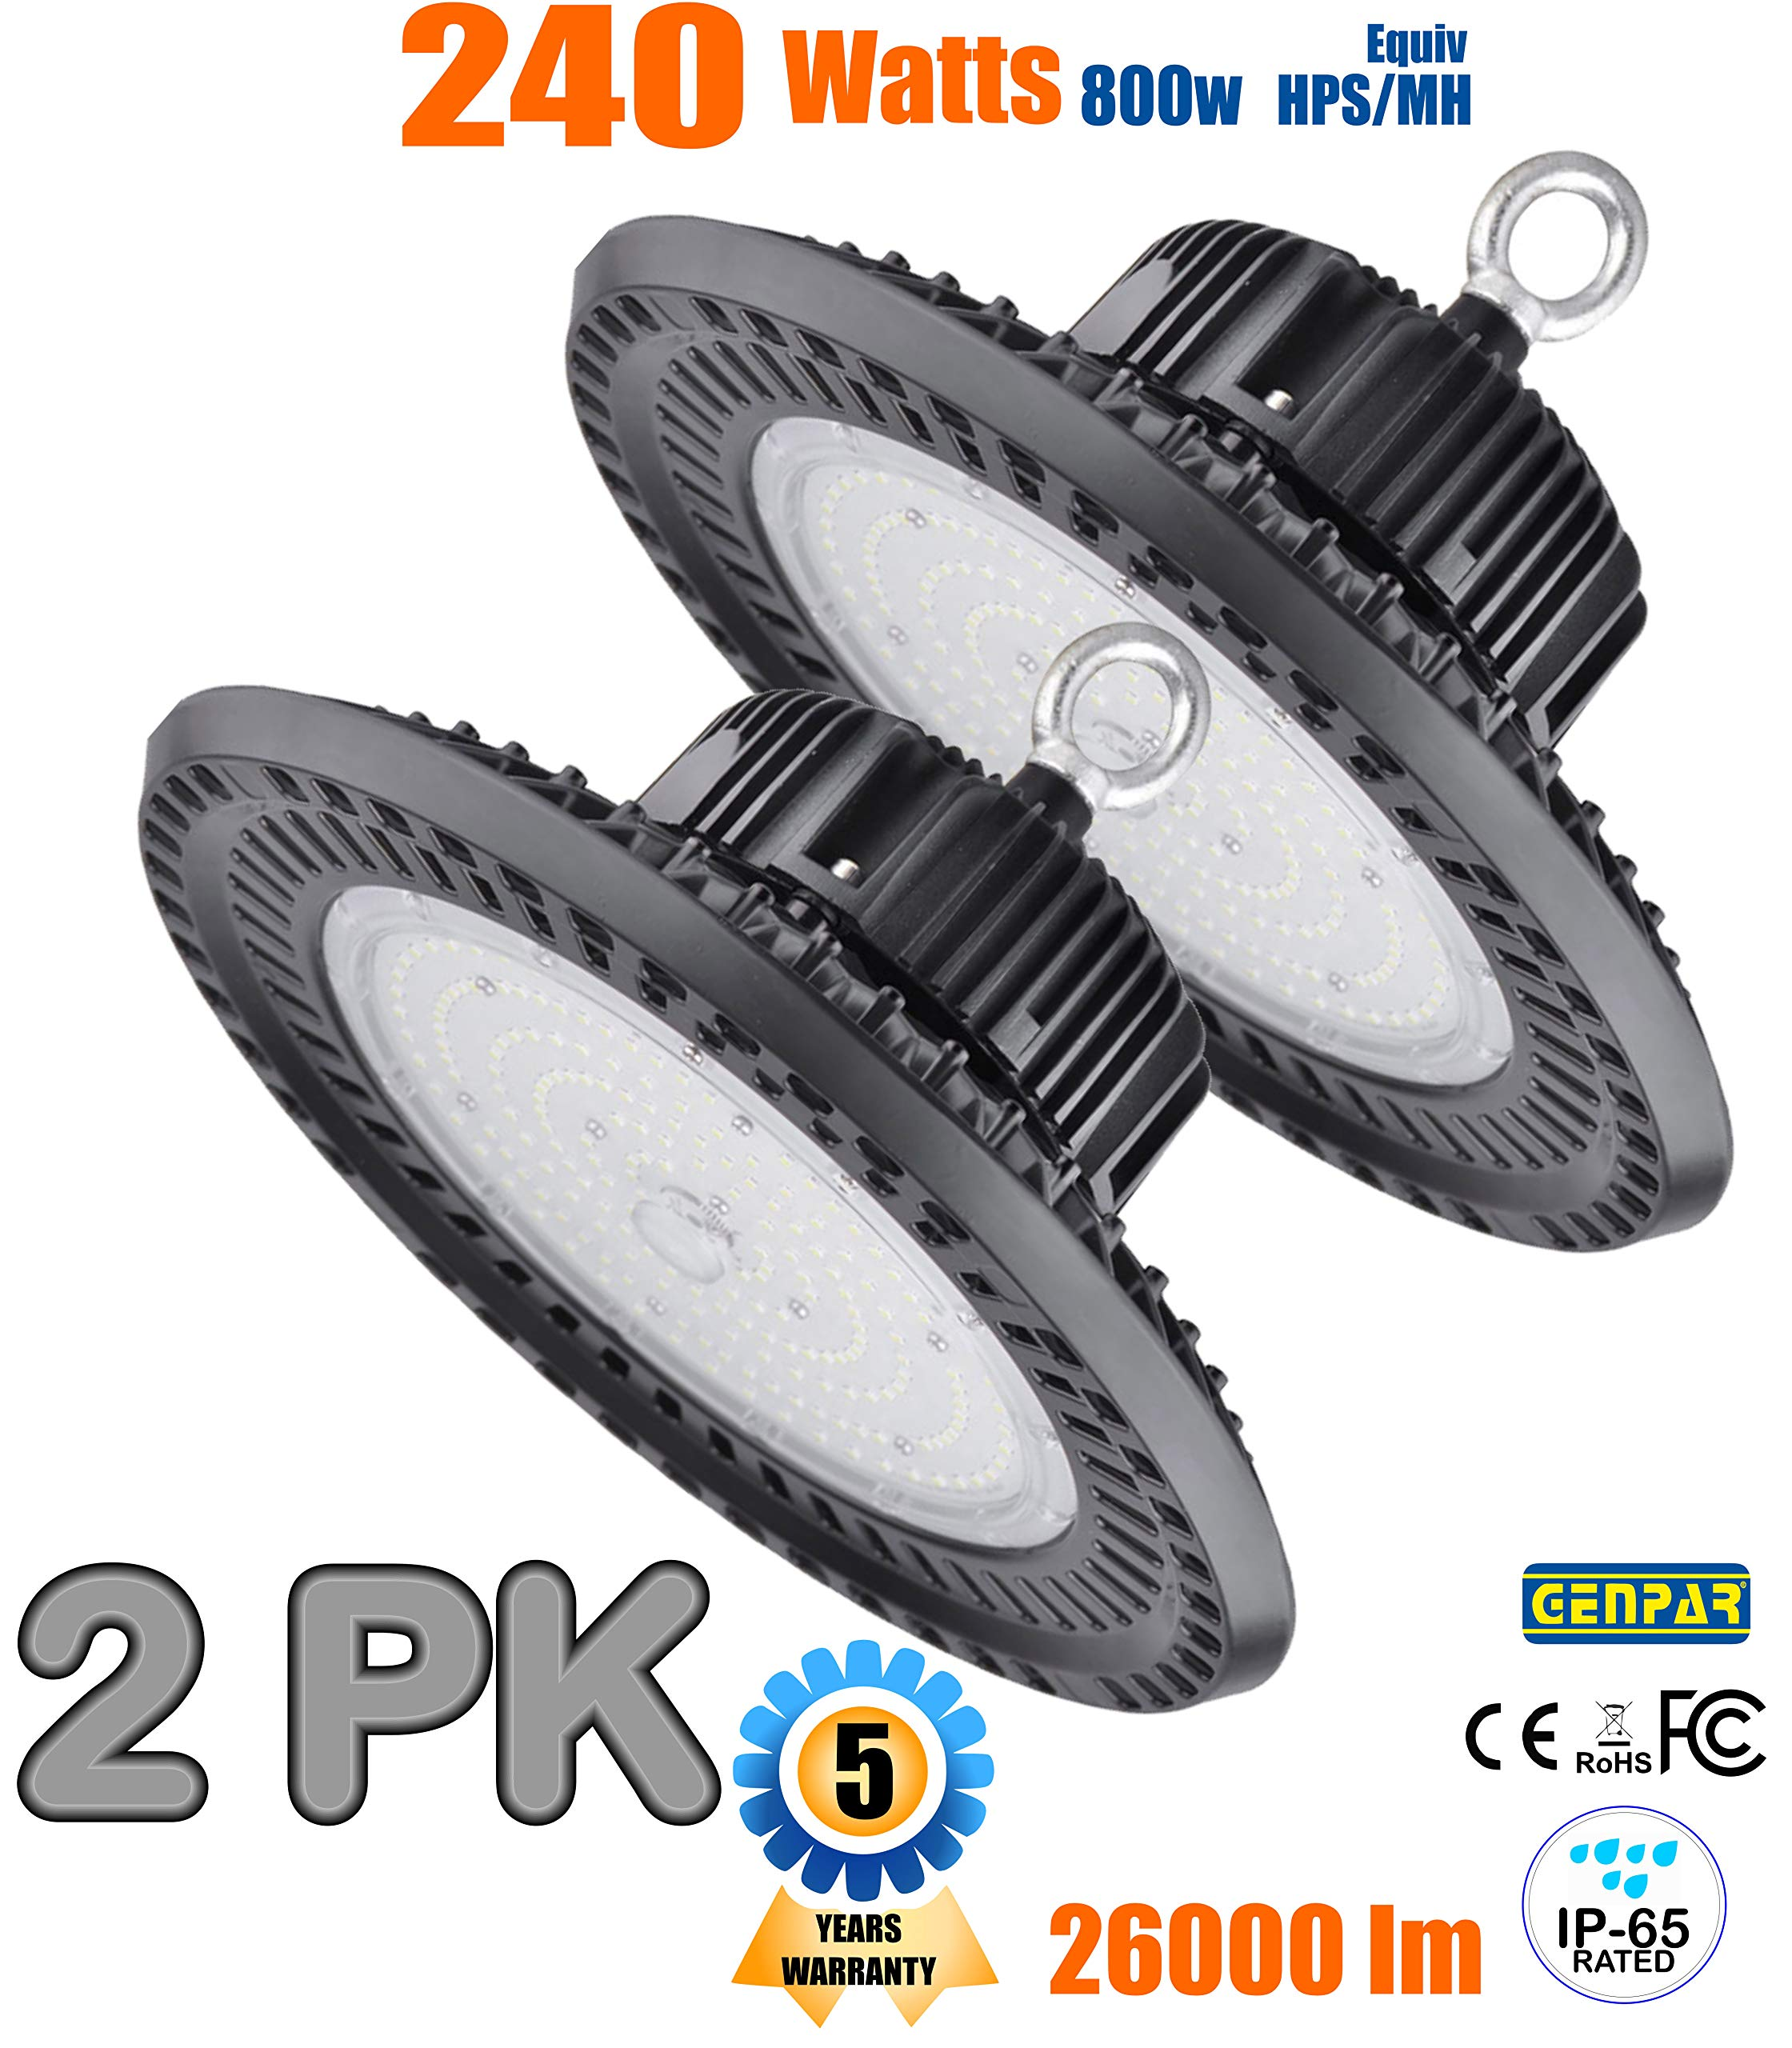 GENPAR 240W UFO LED High Bay Light 800W HPS/MH Equivalent 26000LM lumens Daylight White 6000-6500K IP65 Waterproof Warehouse Lighting Fixture Commercial Lighting Factory Shop Industrial Garage (2-PK) by GENPAR (Image #1)